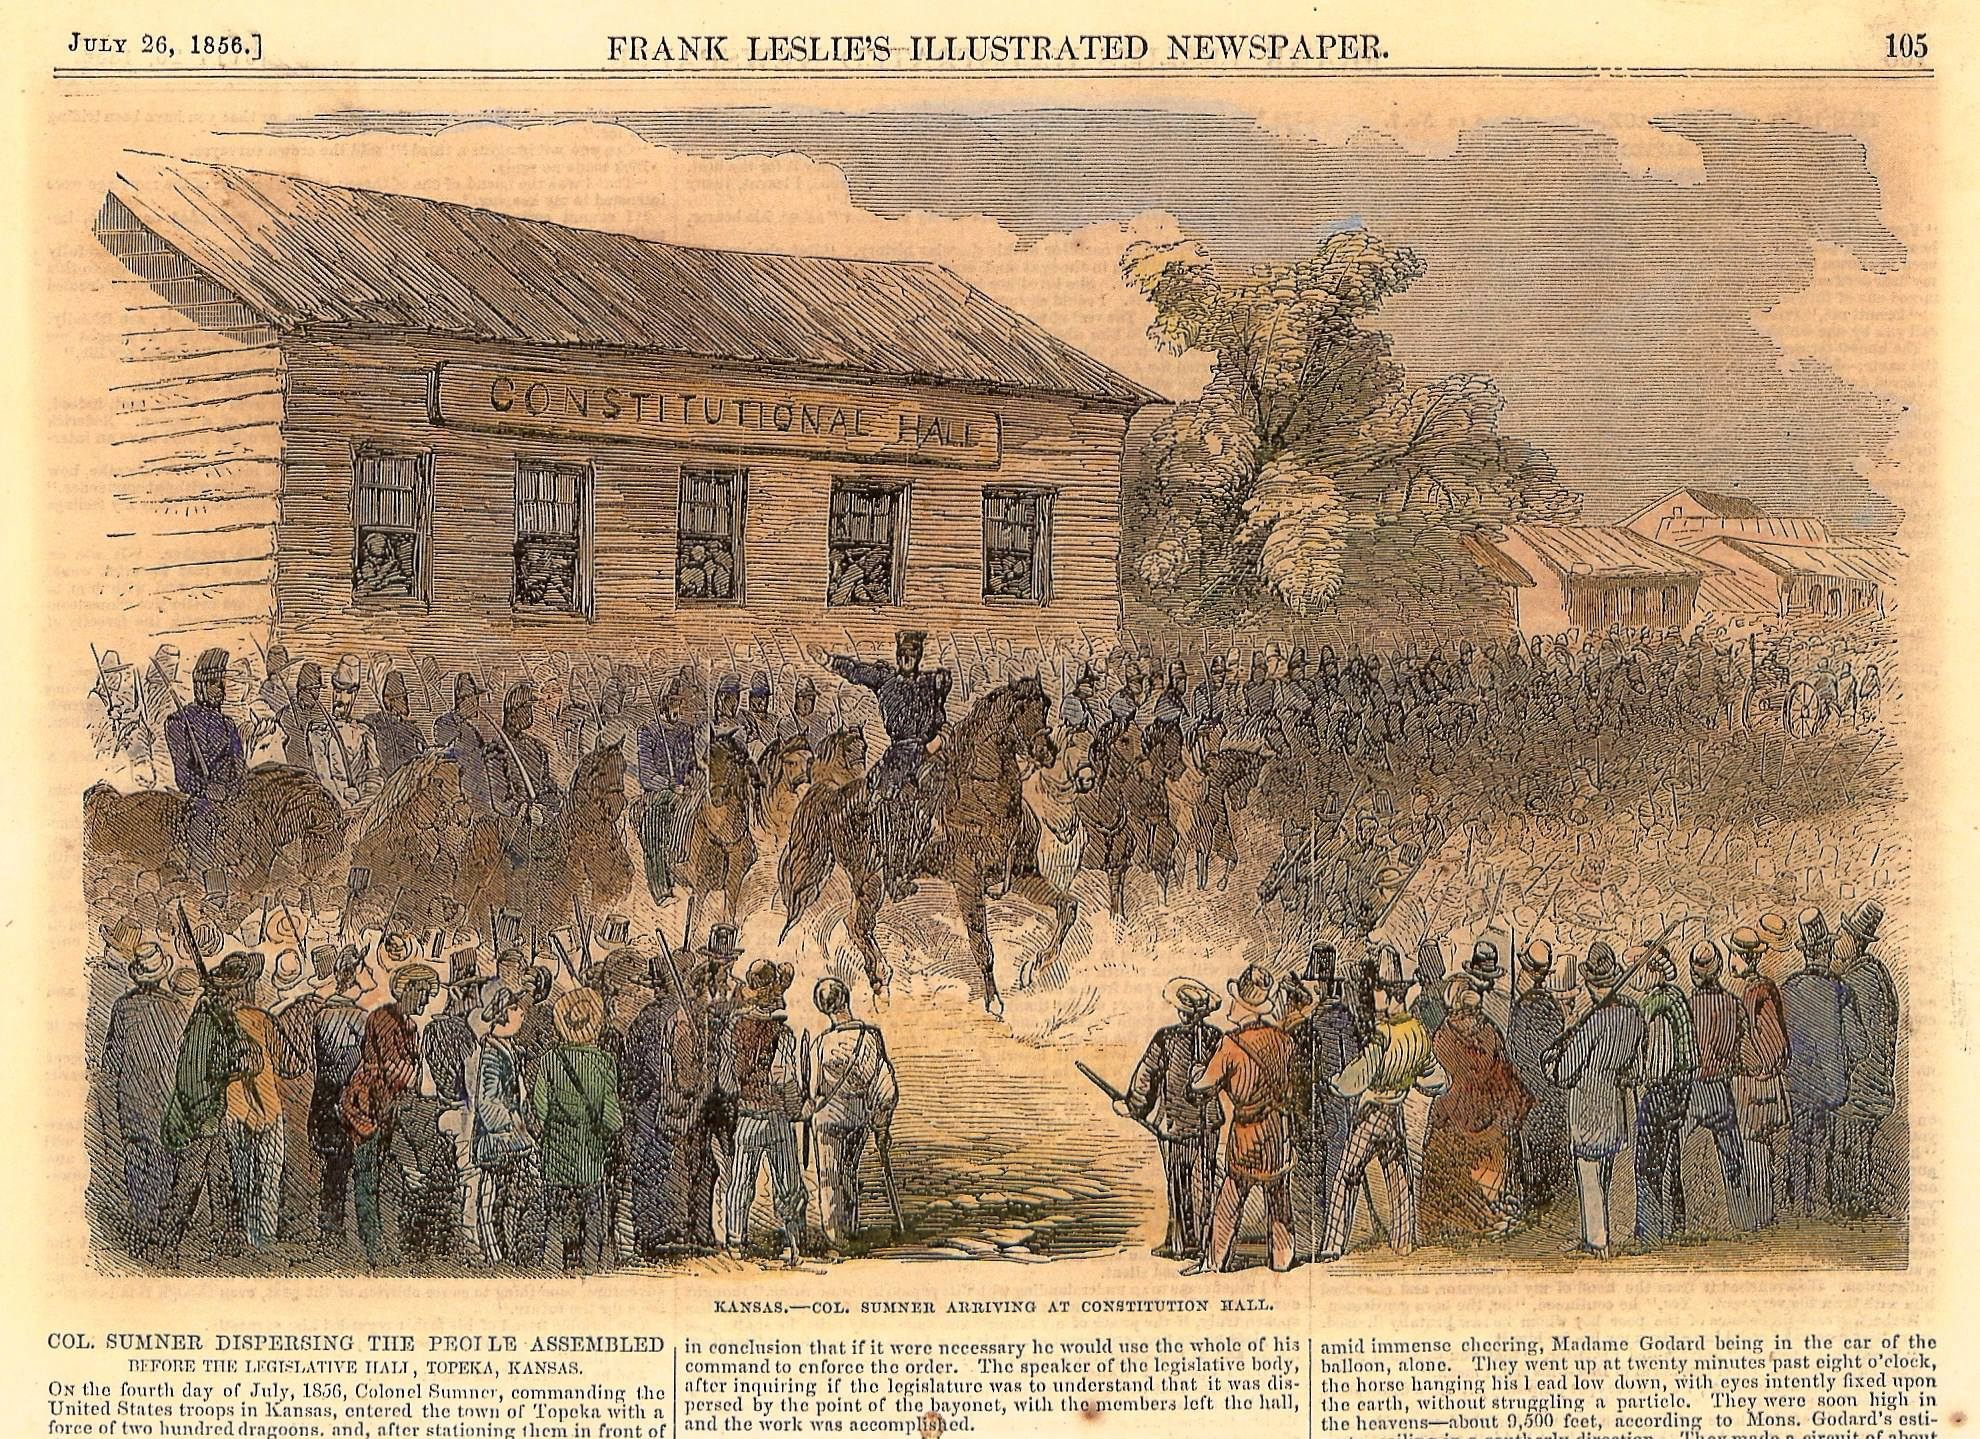 Federal troops surround Constitution Hall on July 4, 1856, and demand that supporters of the Free State legislature disperse.